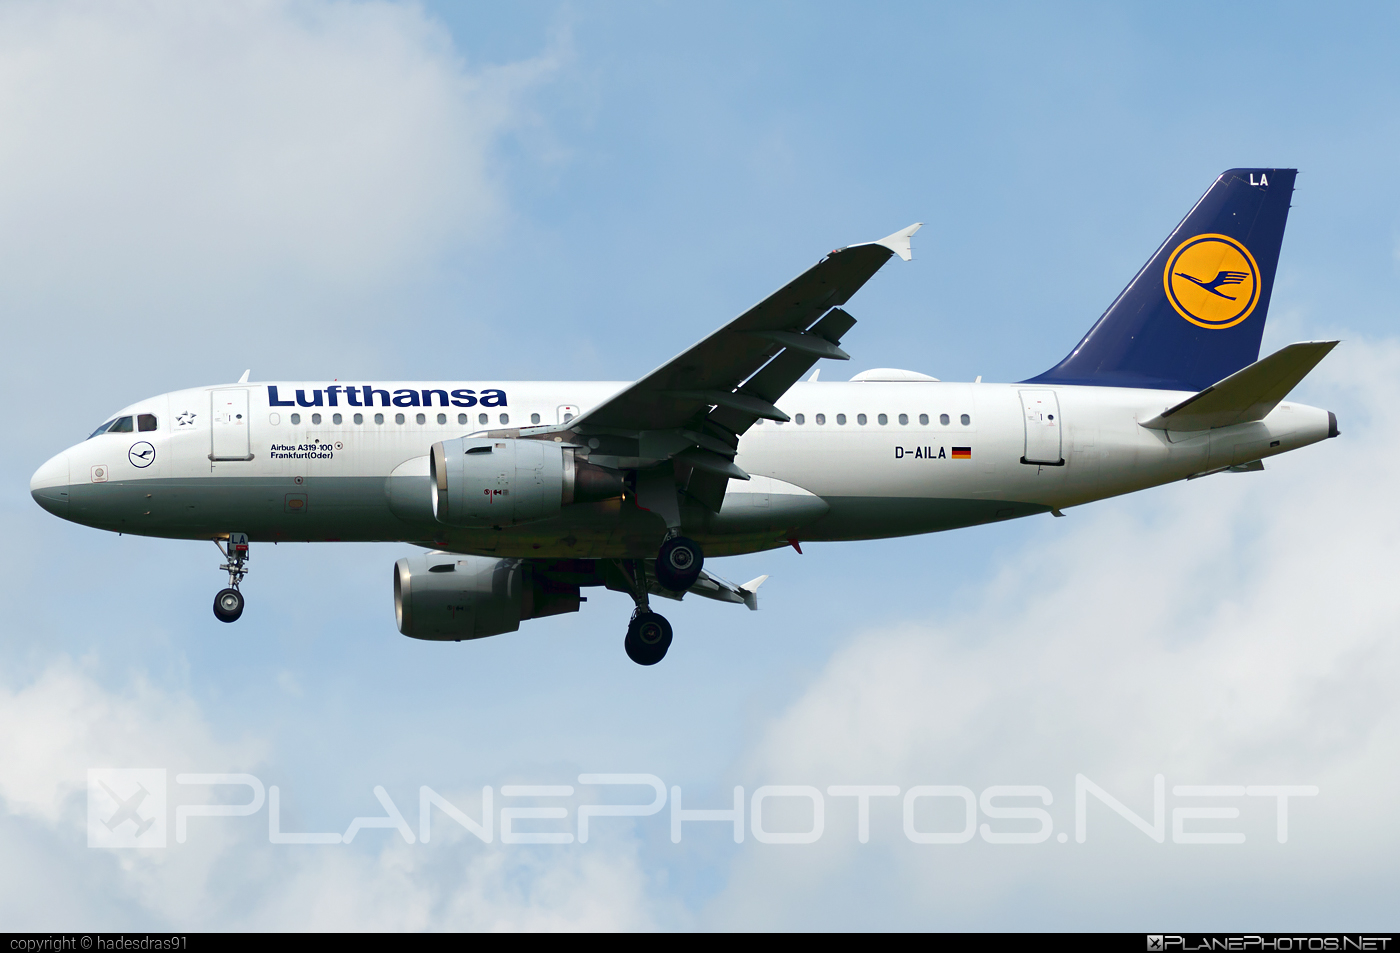 Airbus A319-114 - D-AILA operated by Lufthansa #a319 #a320family #airbus #airbus319 #lufthansa